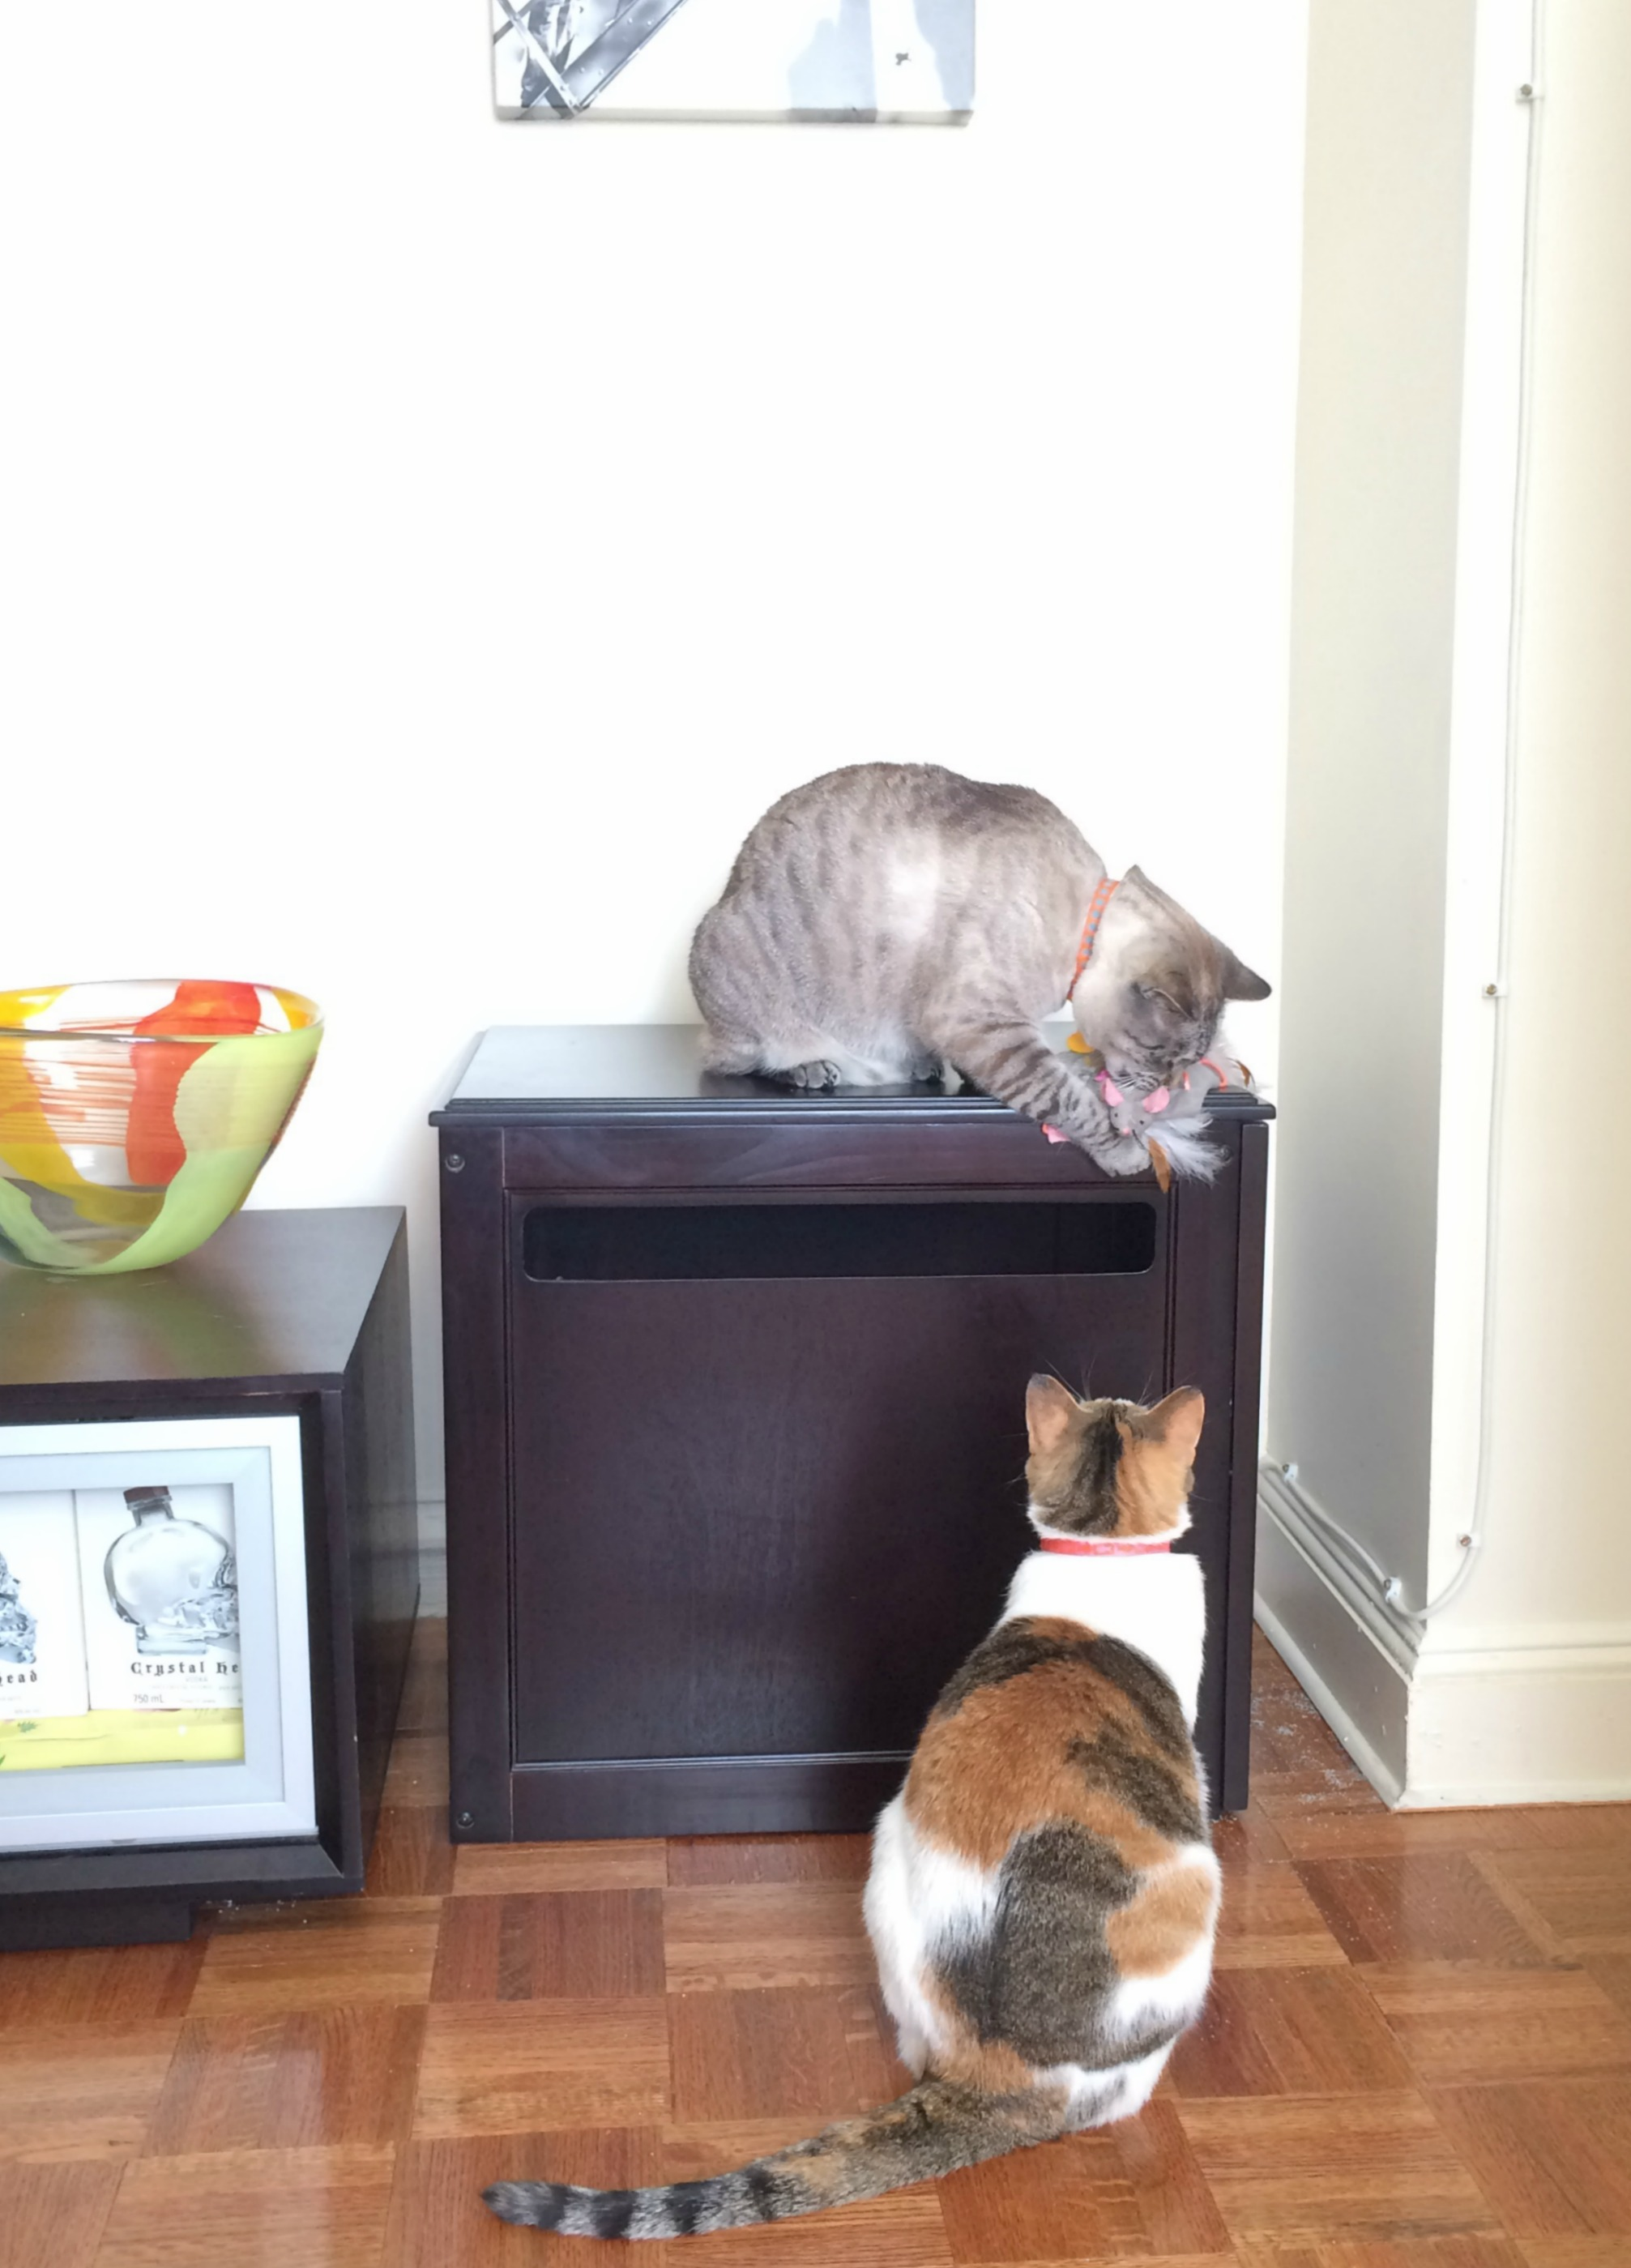 Aspen and Cali playing on litter box